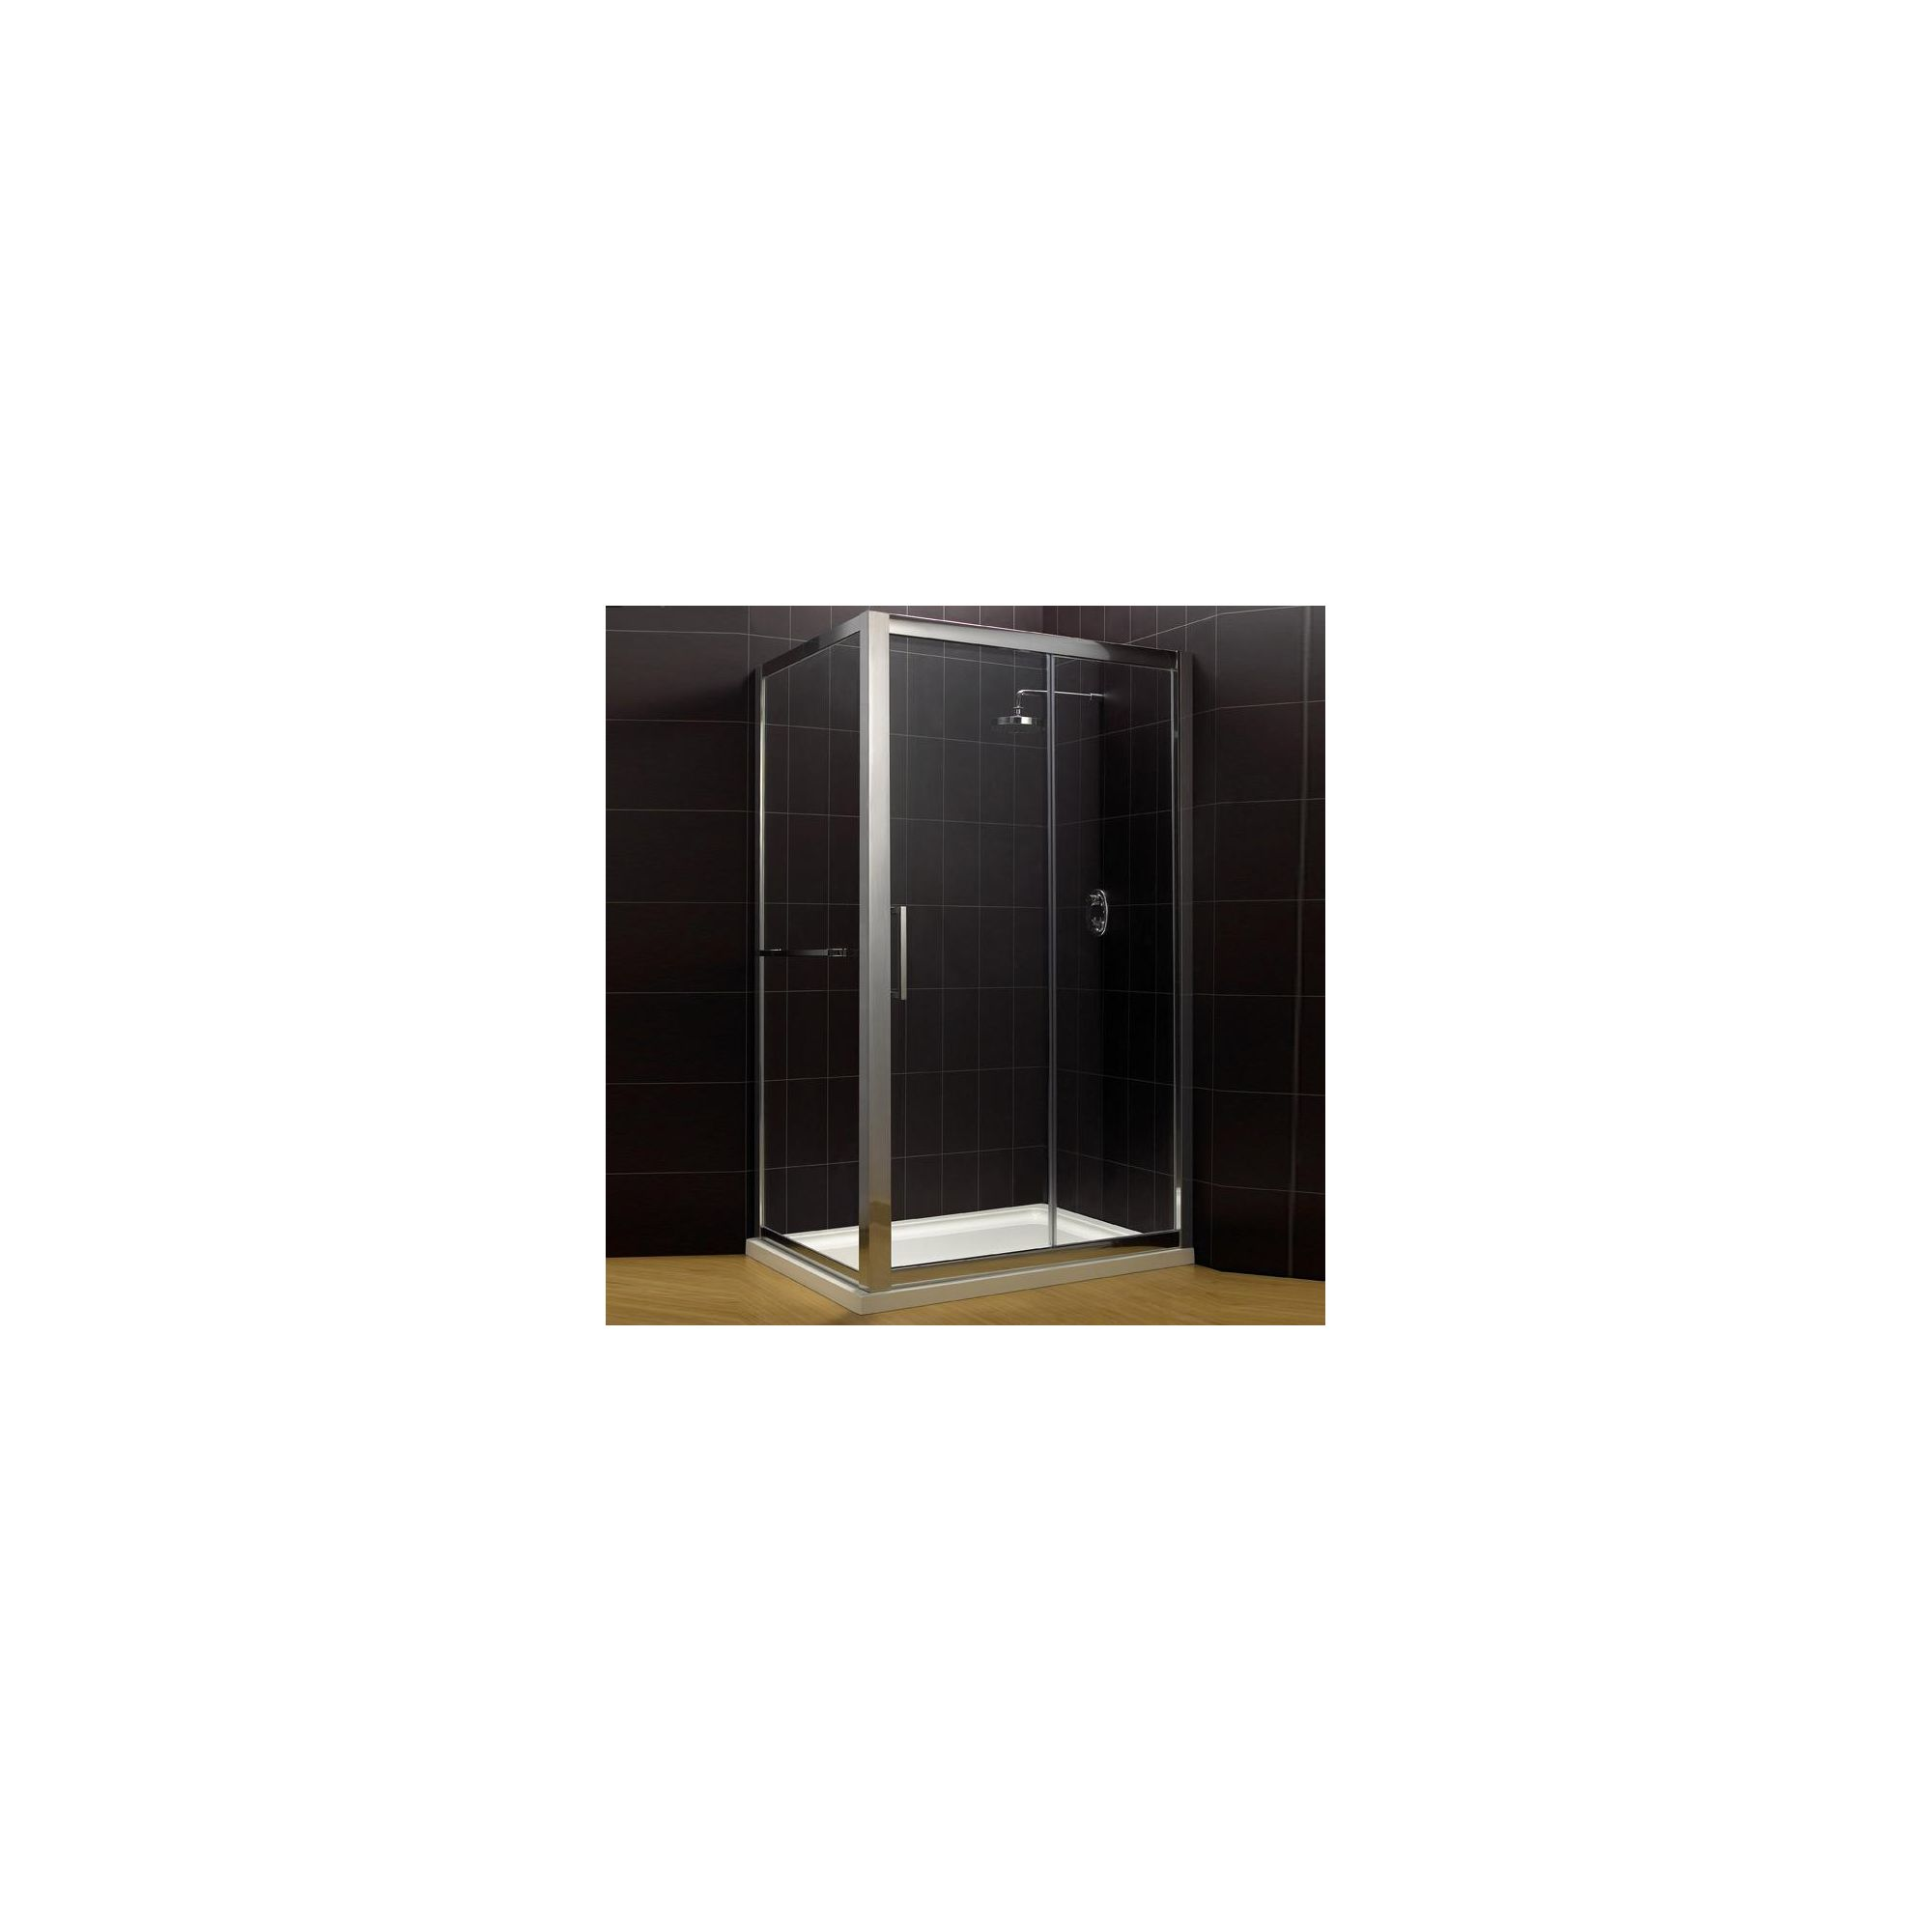 Duchy Supreme Silver Sliding Door Shower Enclosure with Towel Rail, 1400mm x 800mm, Standard Tray, 8mm Glass at Tesco Direct